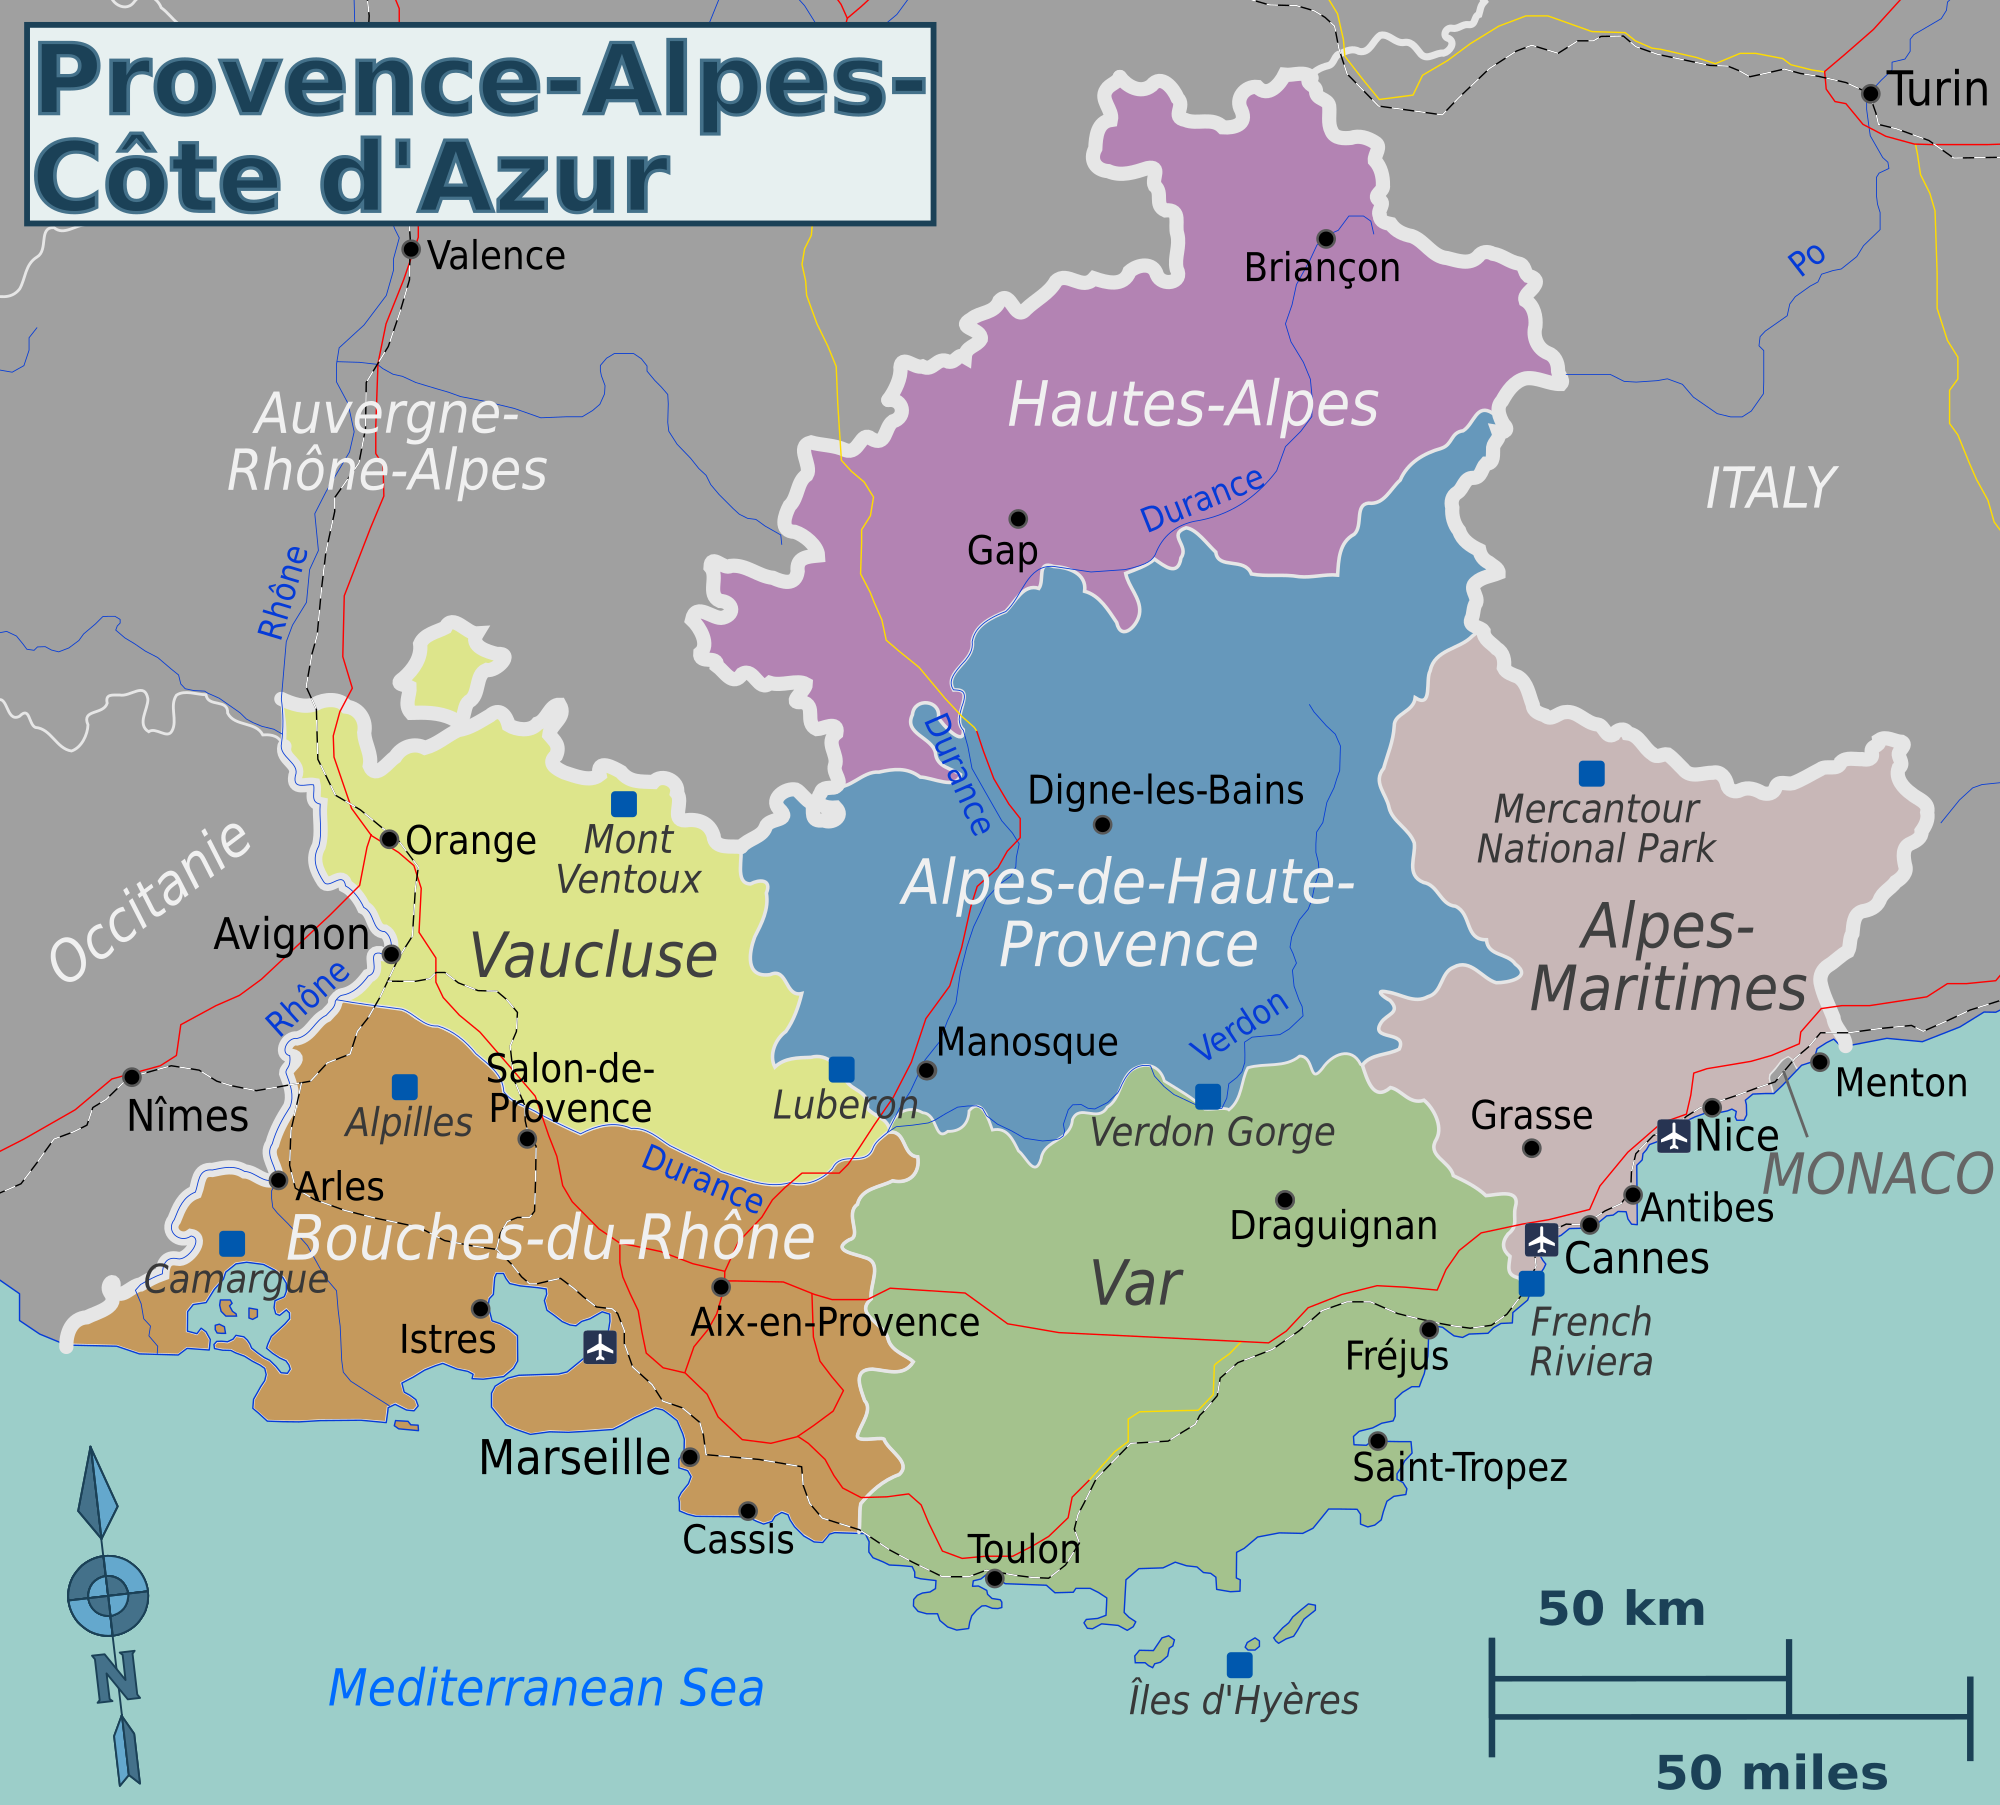 file provence alpes cote d 39 azur wv region map 2017 wikimedia commons. Black Bedroom Furniture Sets. Home Design Ideas